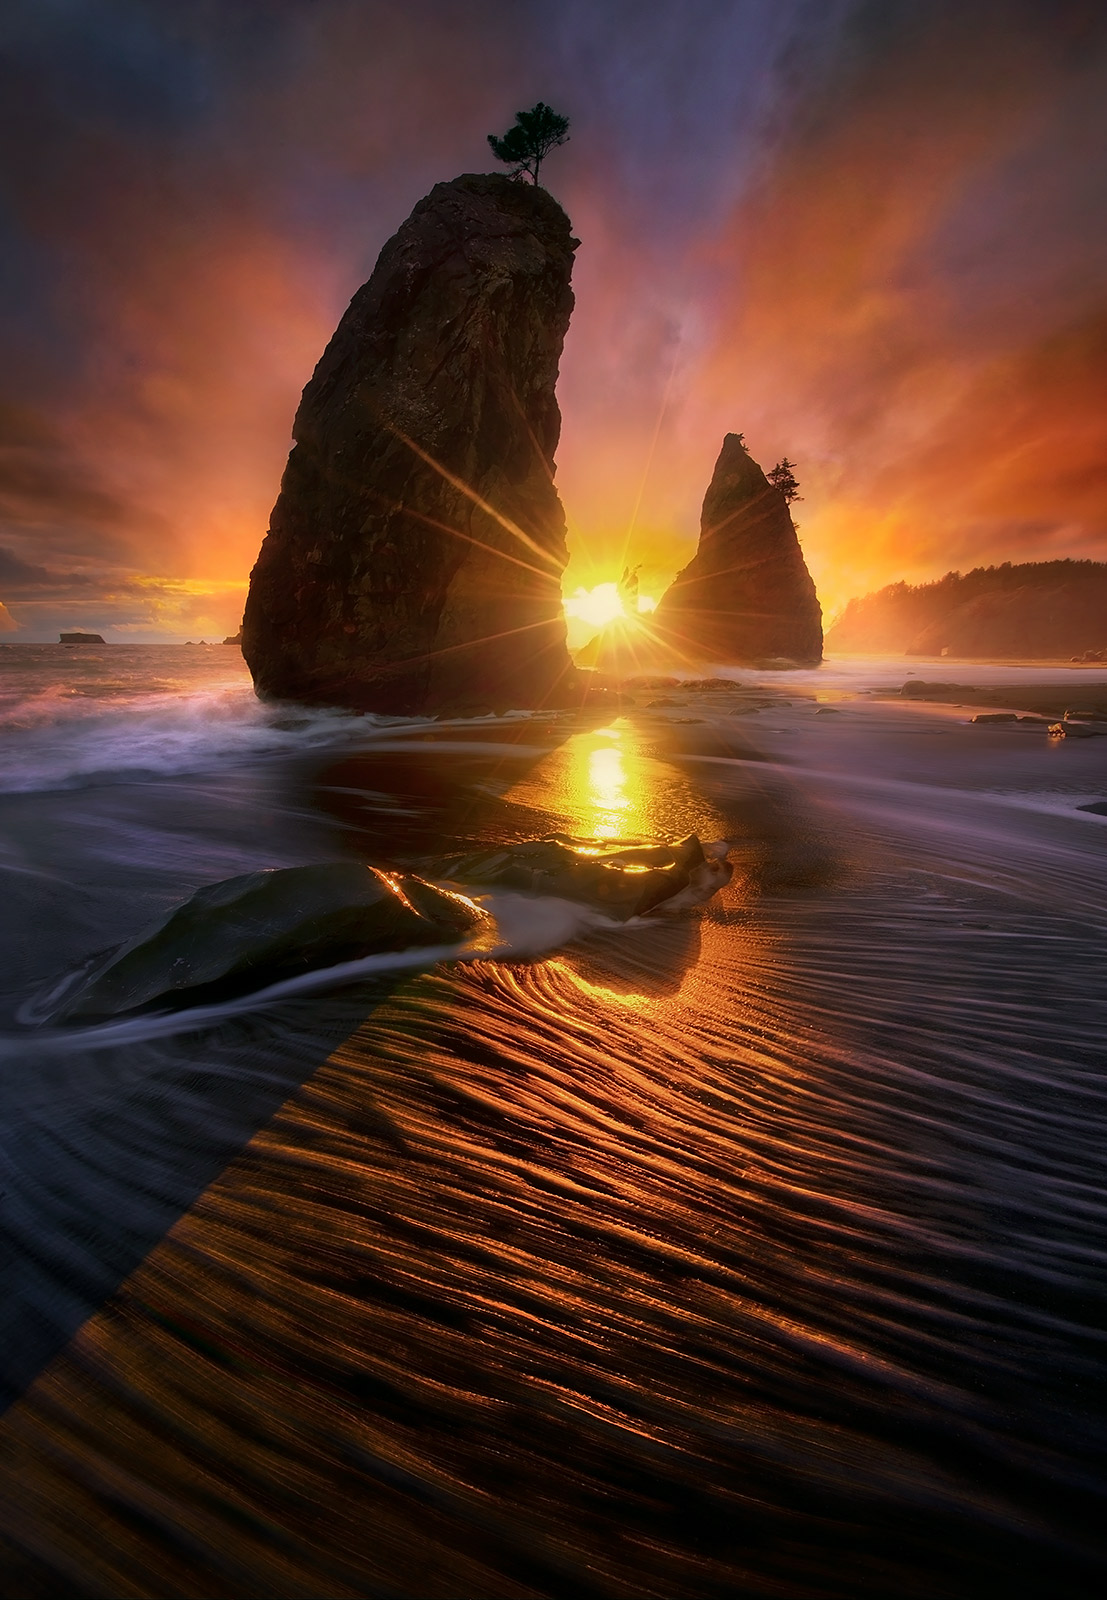 dramatic, olympic coast, coast, sunset, photo